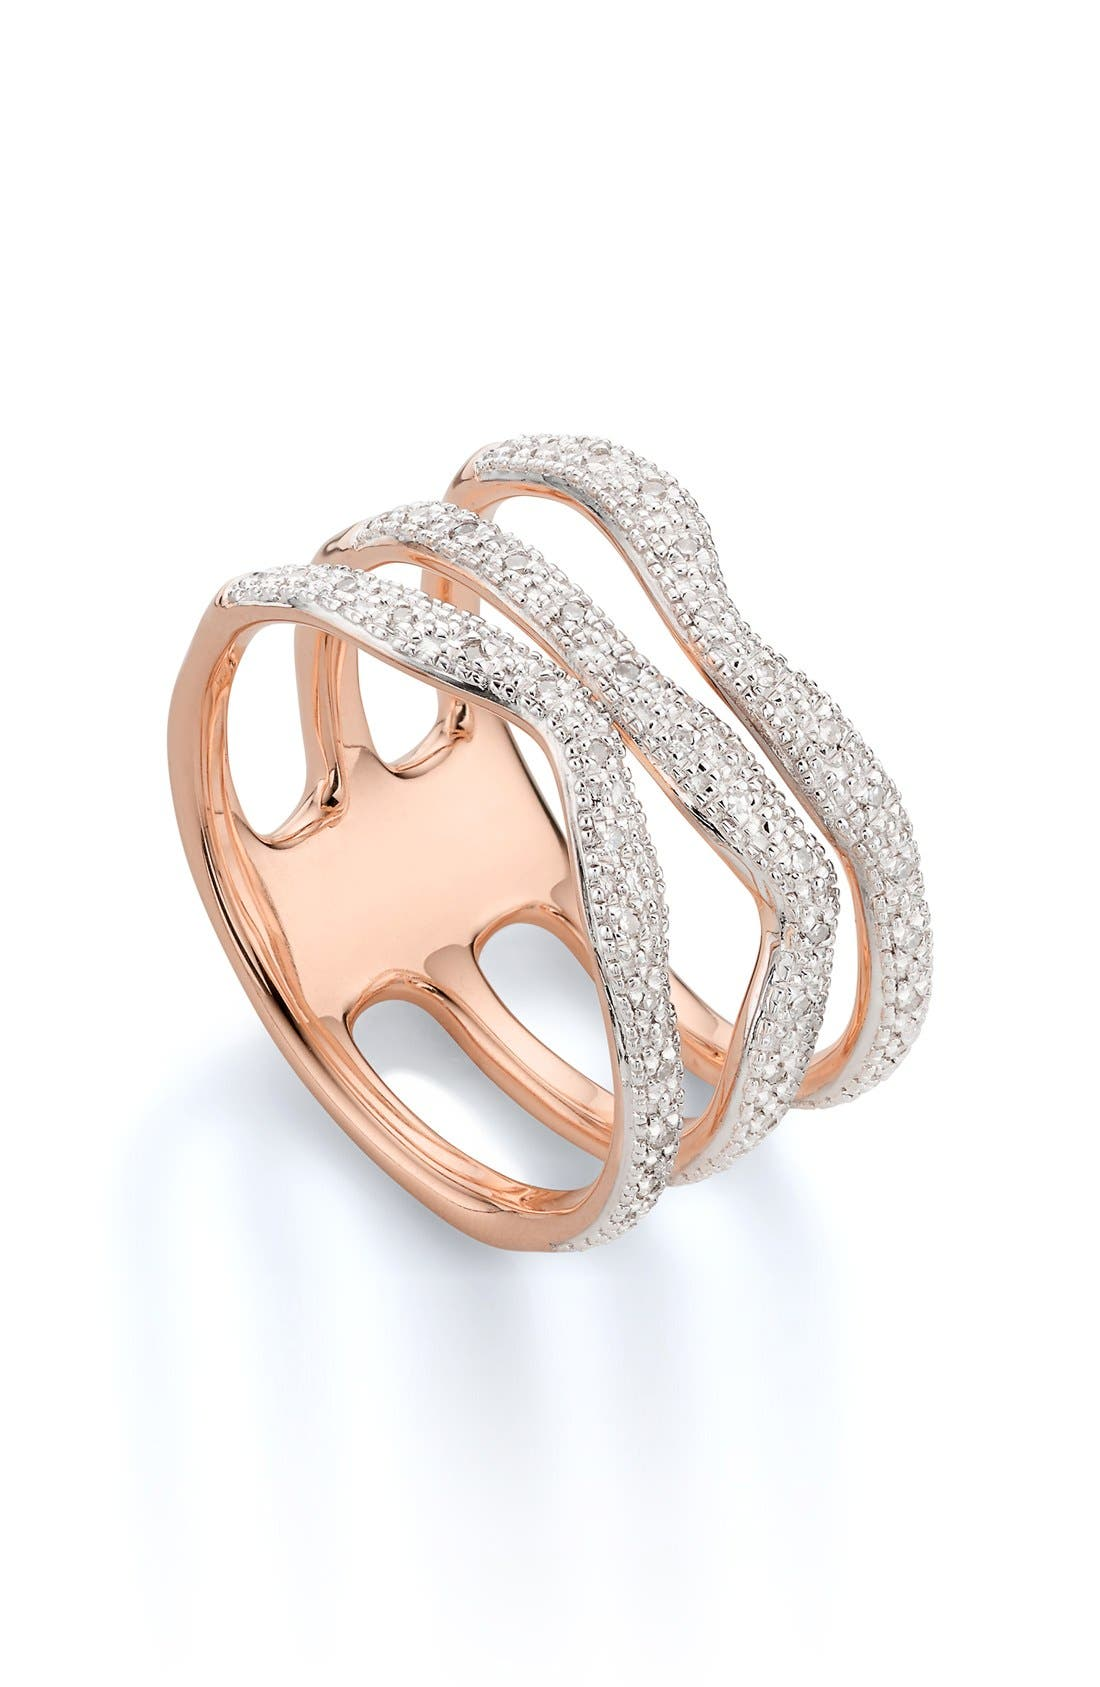 Main Image - Monica Vinader 'Riva' Three Band Diamond Ring